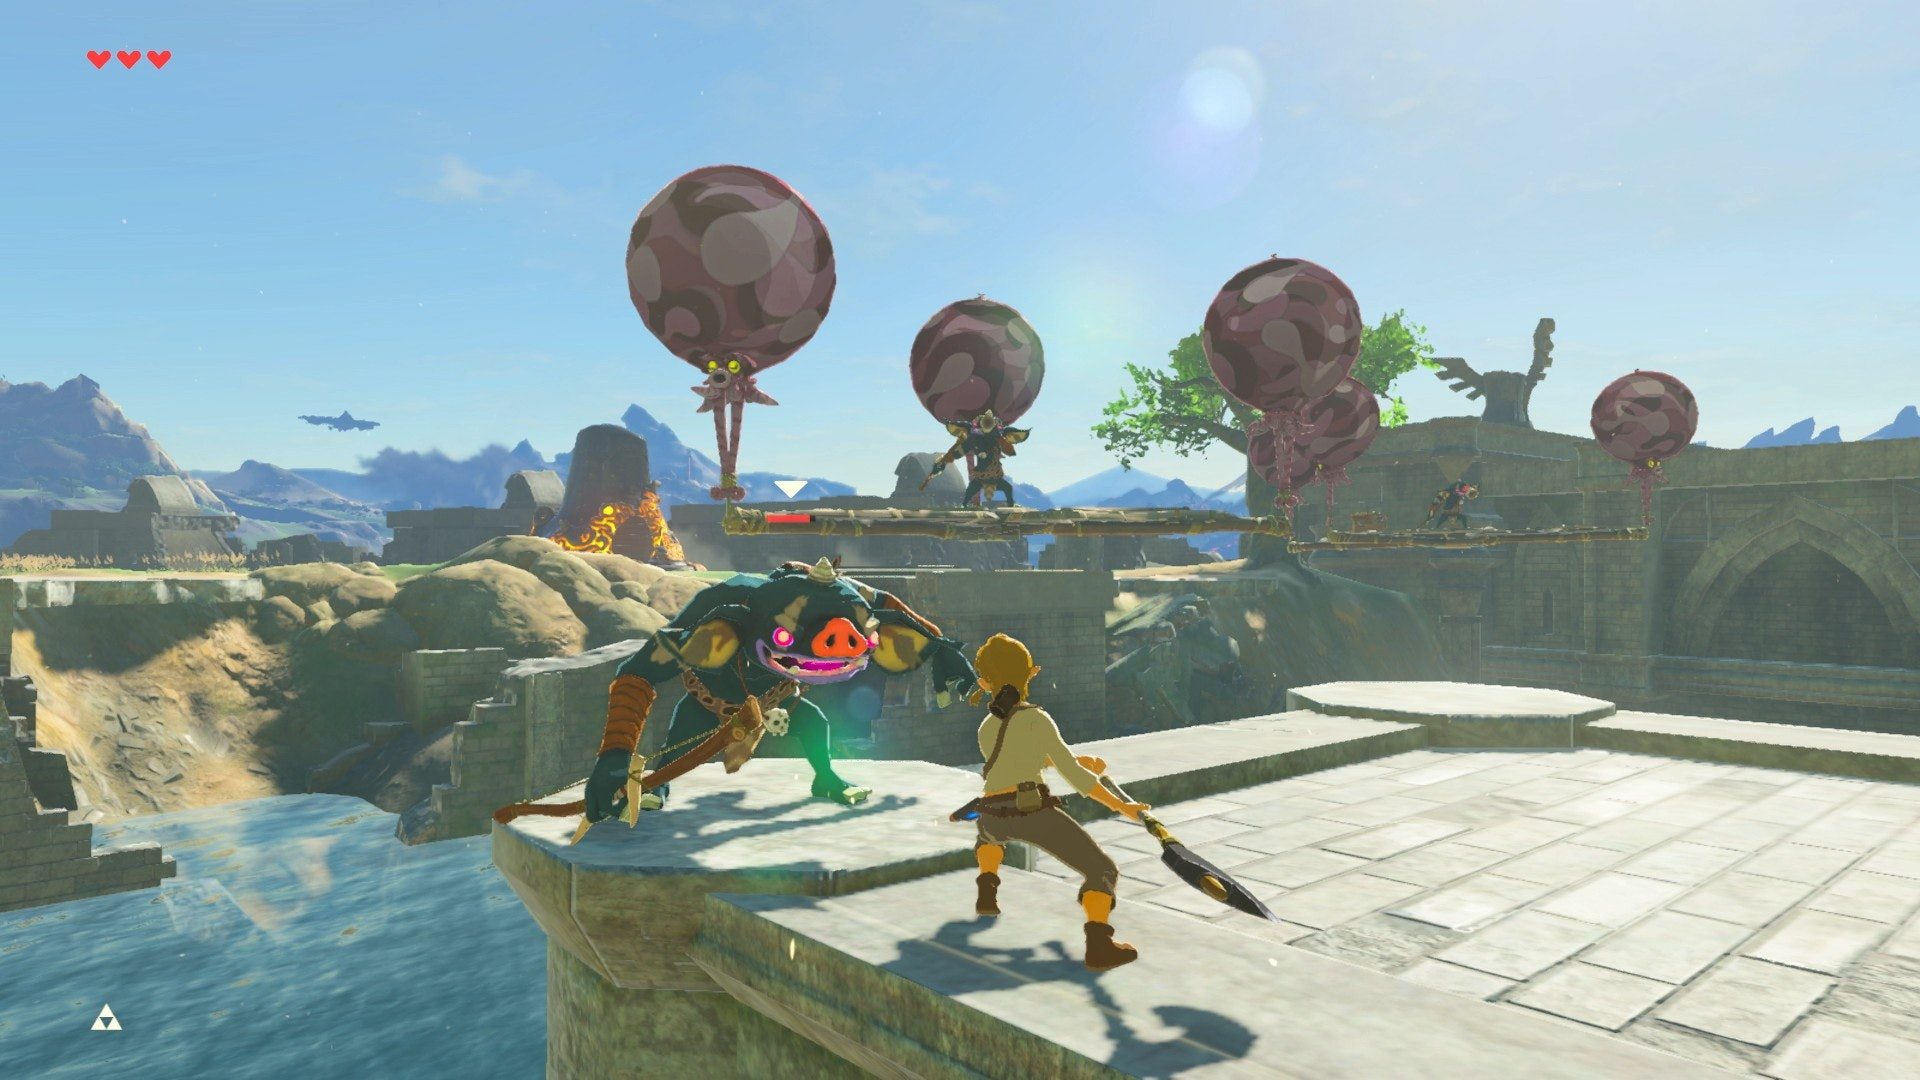 Zelda: Breath of the Wild' Master Mode Guide: Changes in the